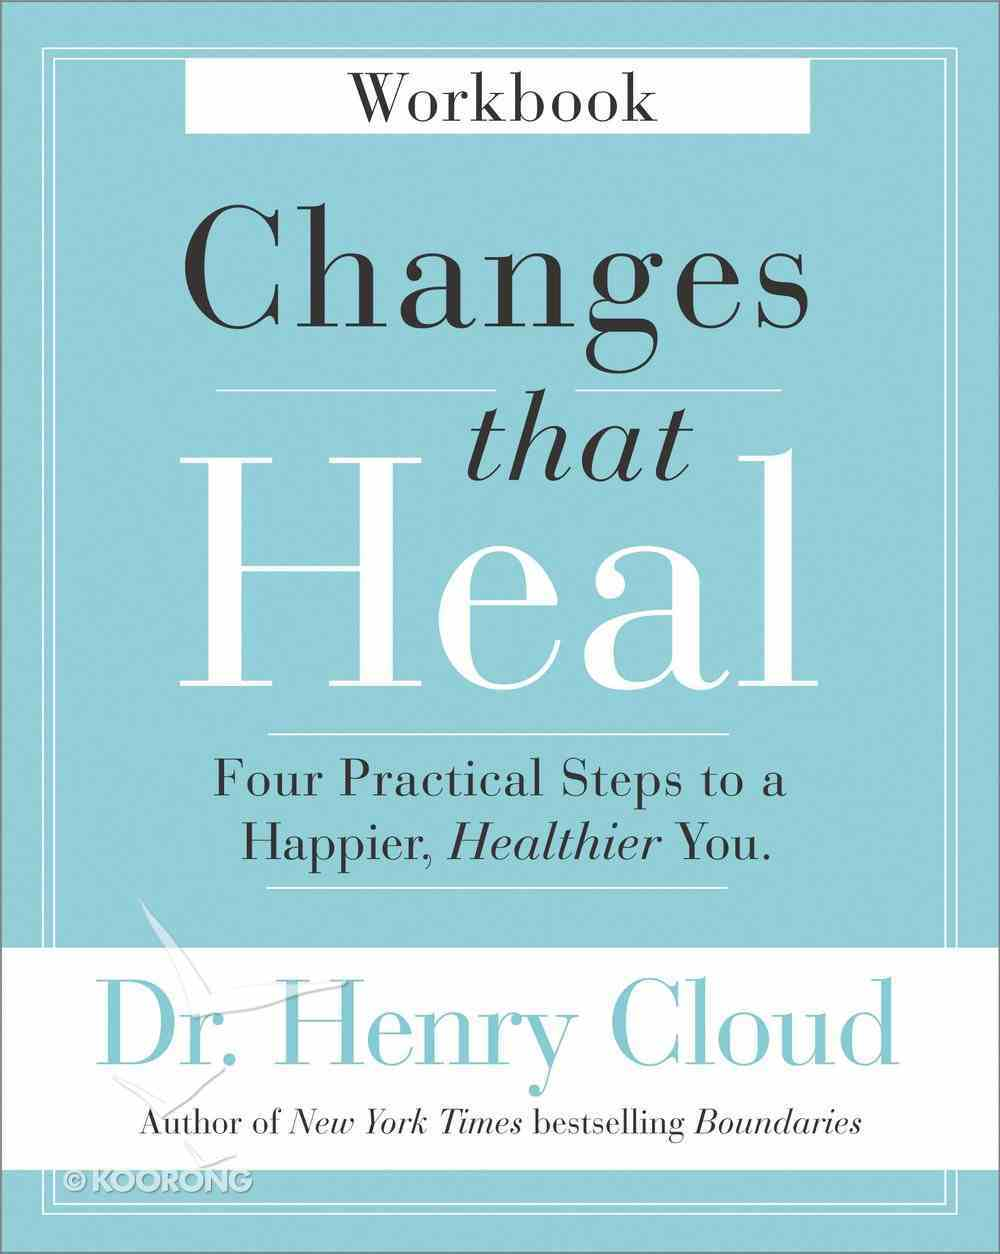 Changes That Heal: Four Practical Steps to a Happier, Healthier You (Workbook) Paperback